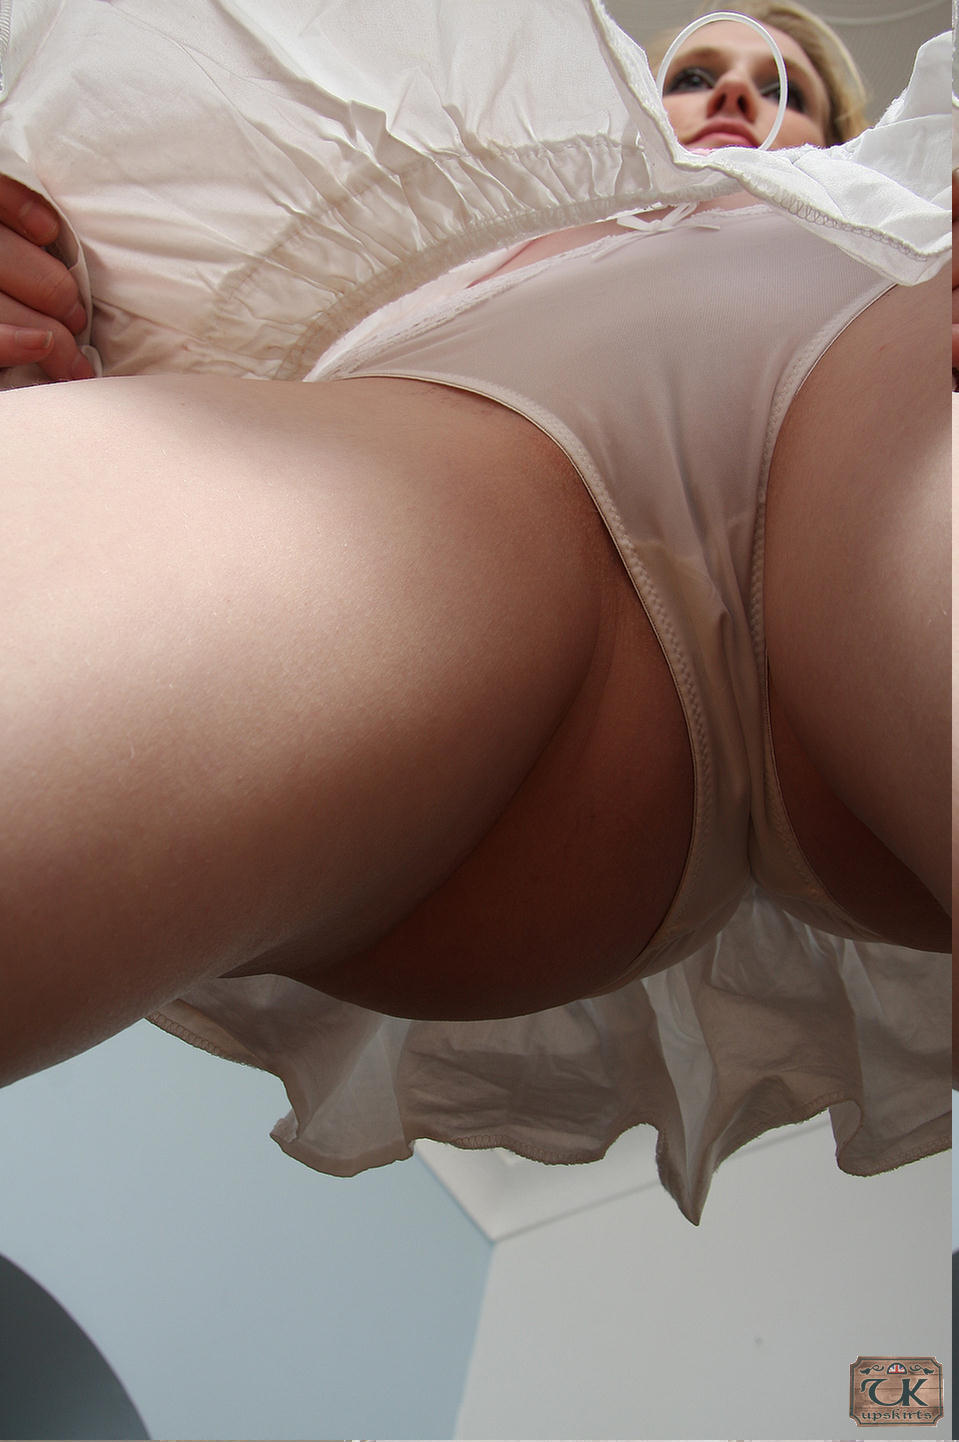 Also english knickers upskirt